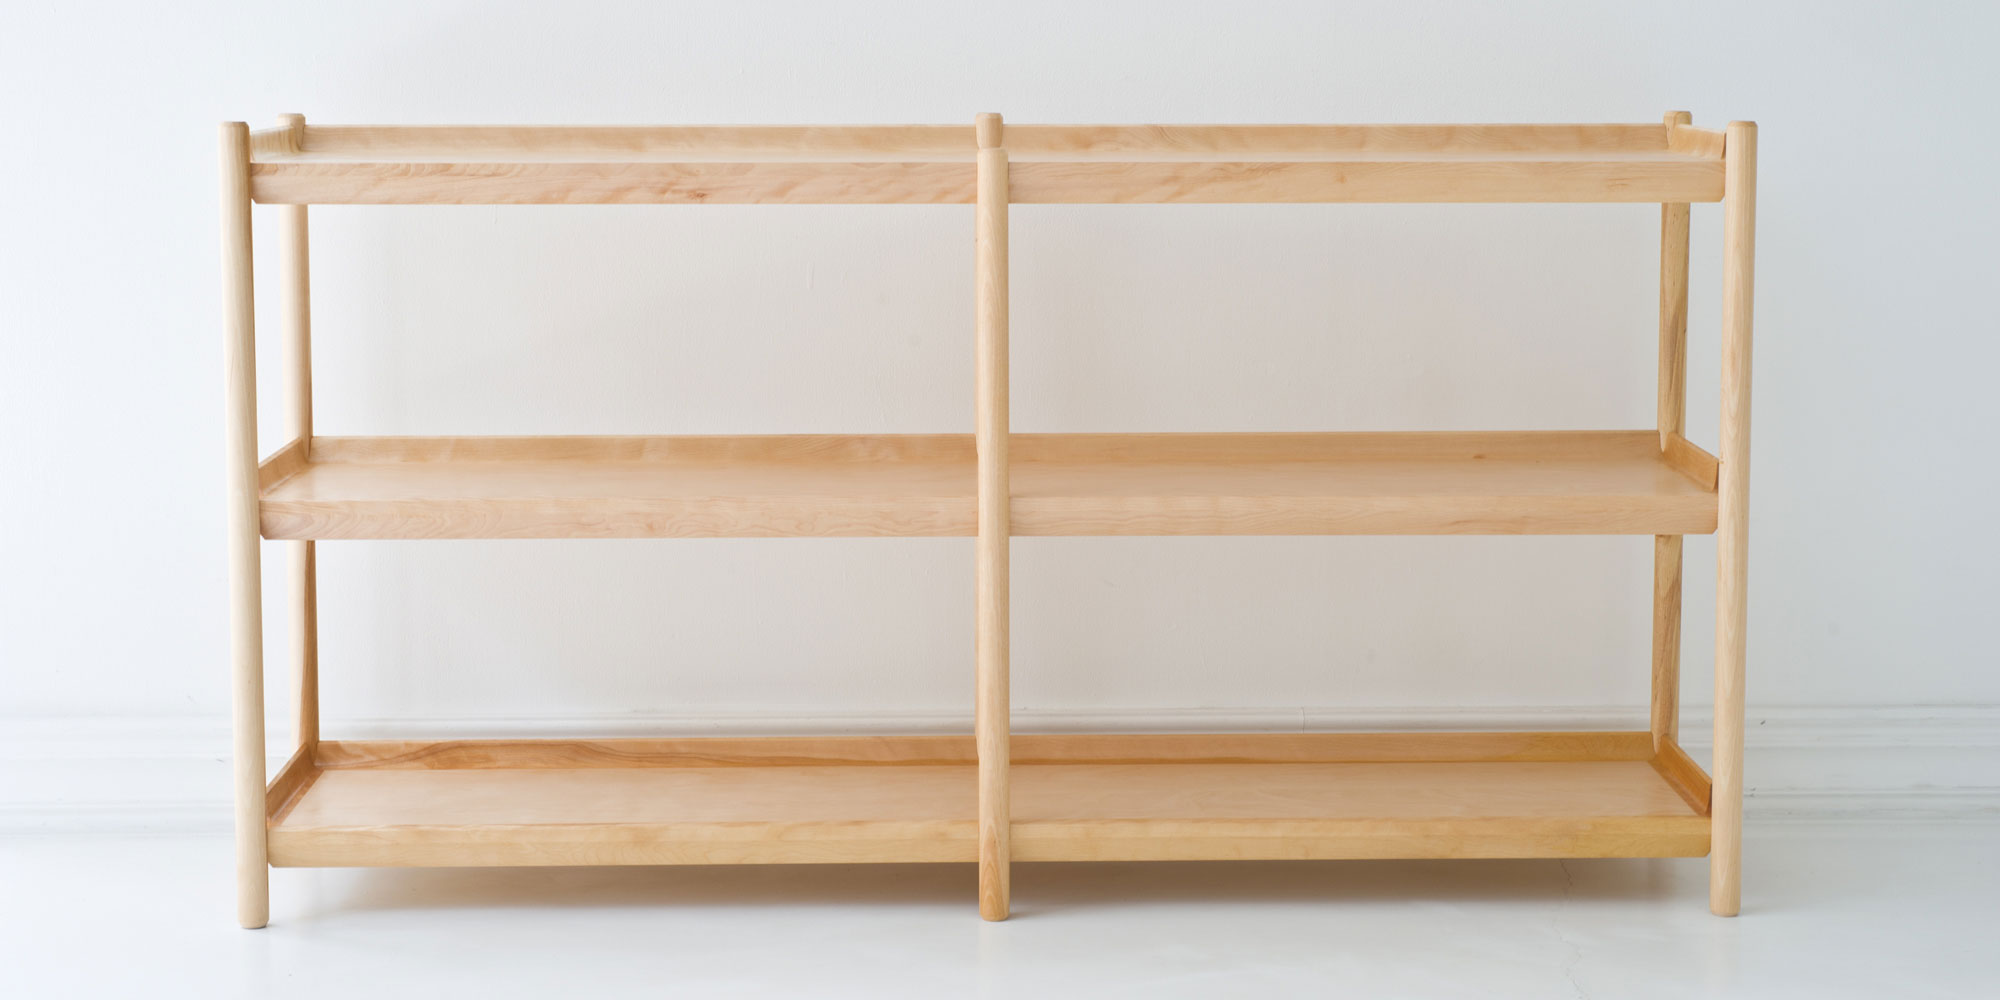 Brim_Shelf_01_top